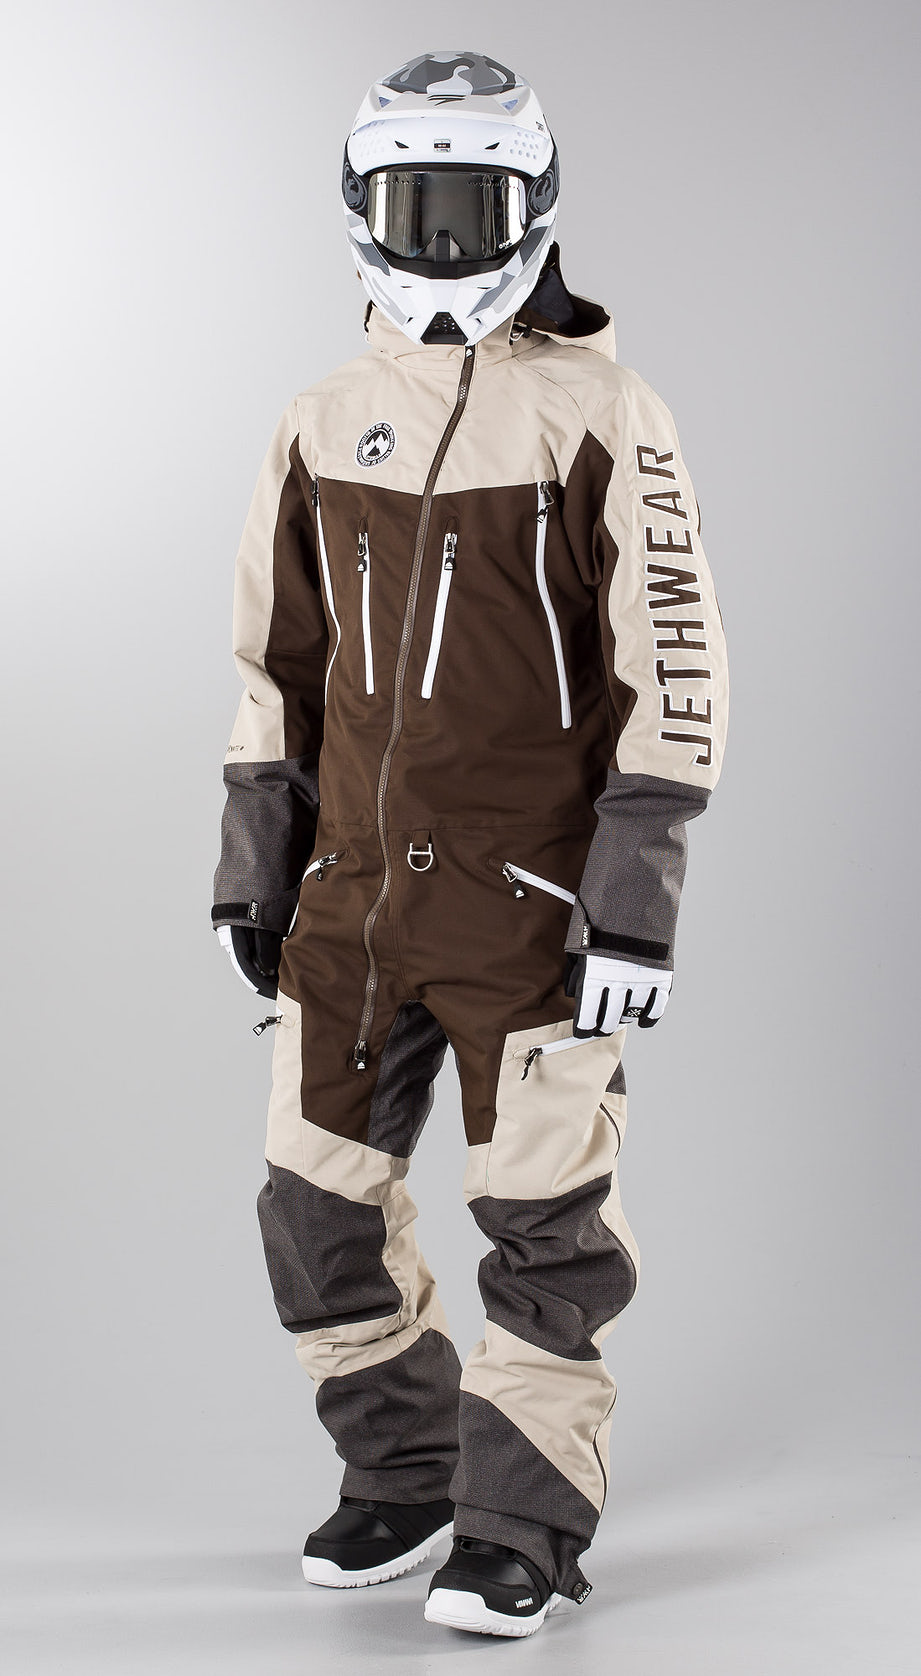 Jethwear Freedom Suit  Java Skoterkläder Multi